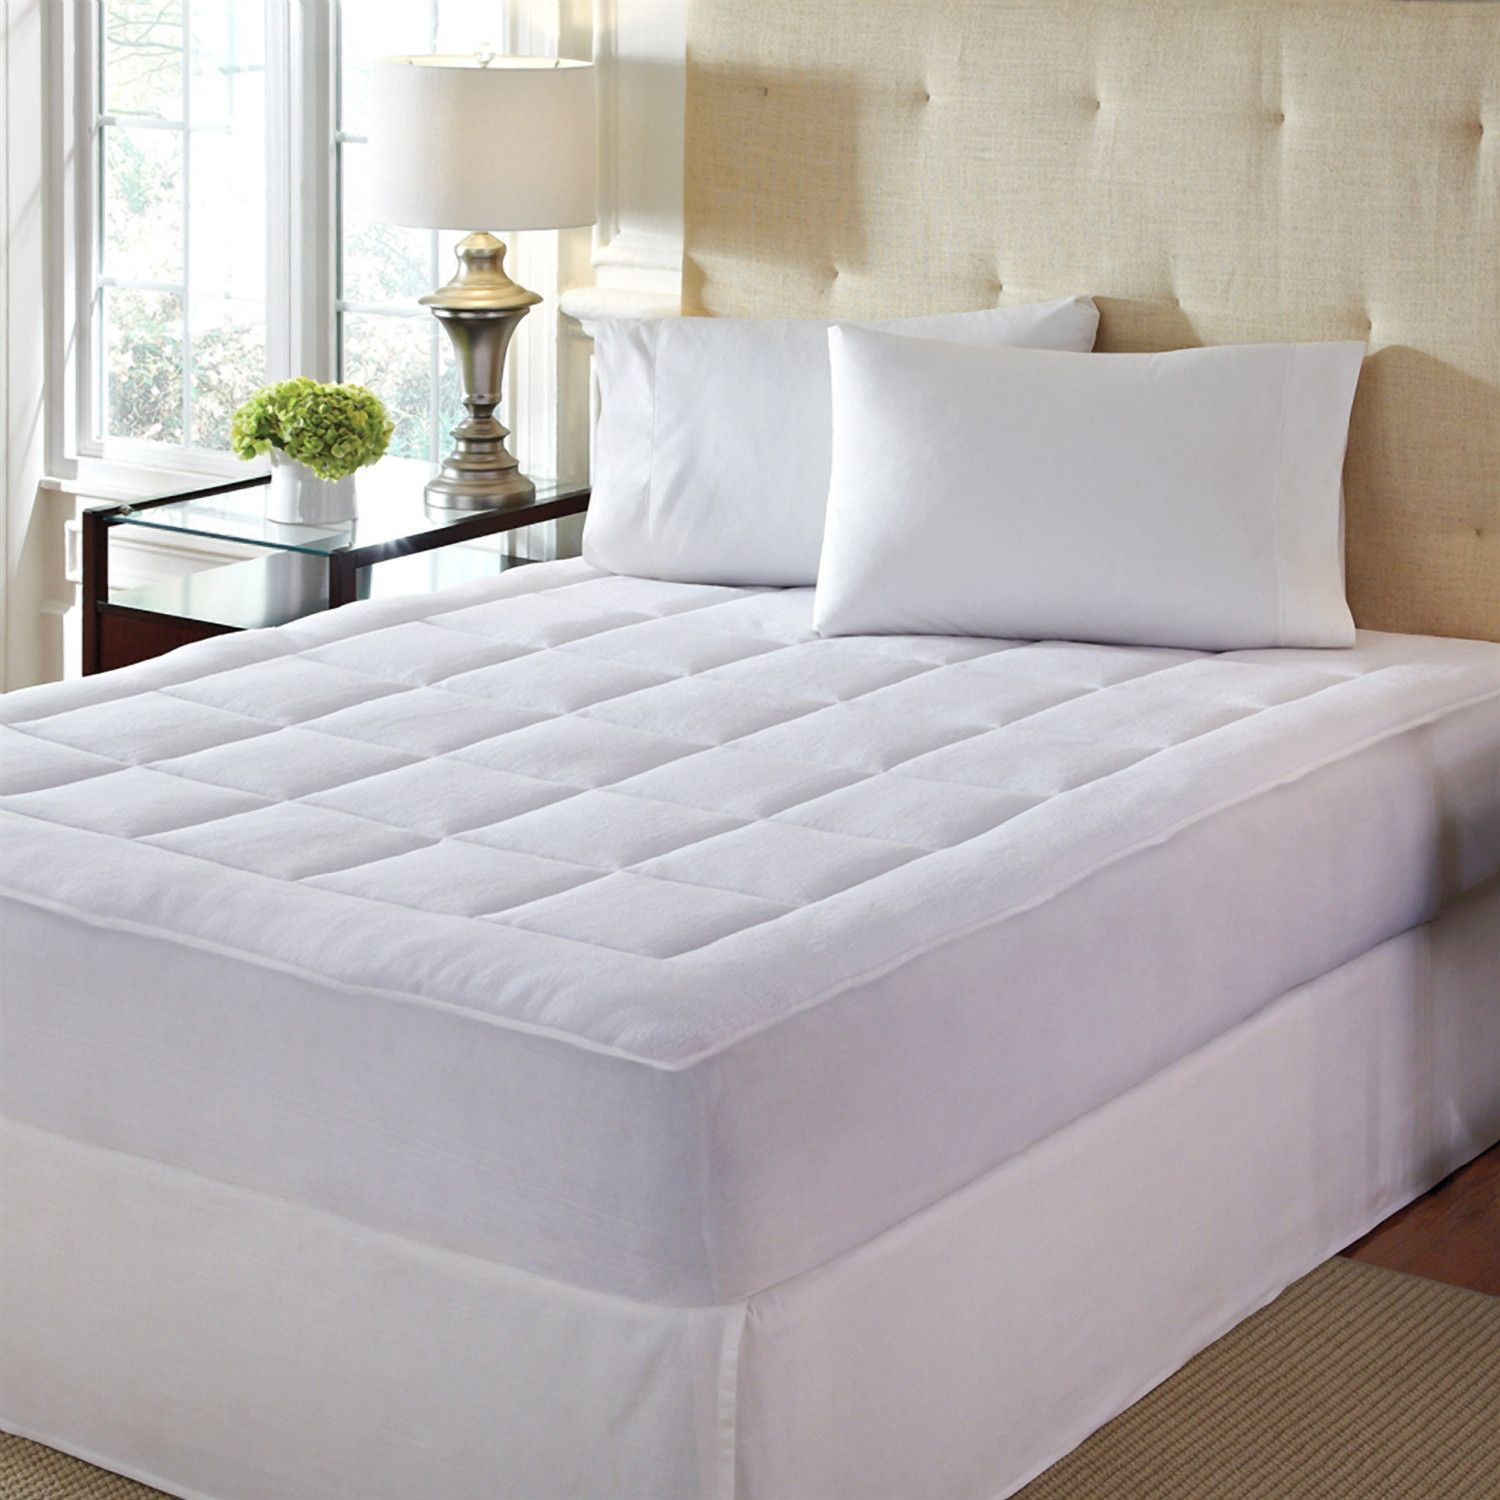 Twin XL size MicroPlush Mattress Pad Hypoallergenic and